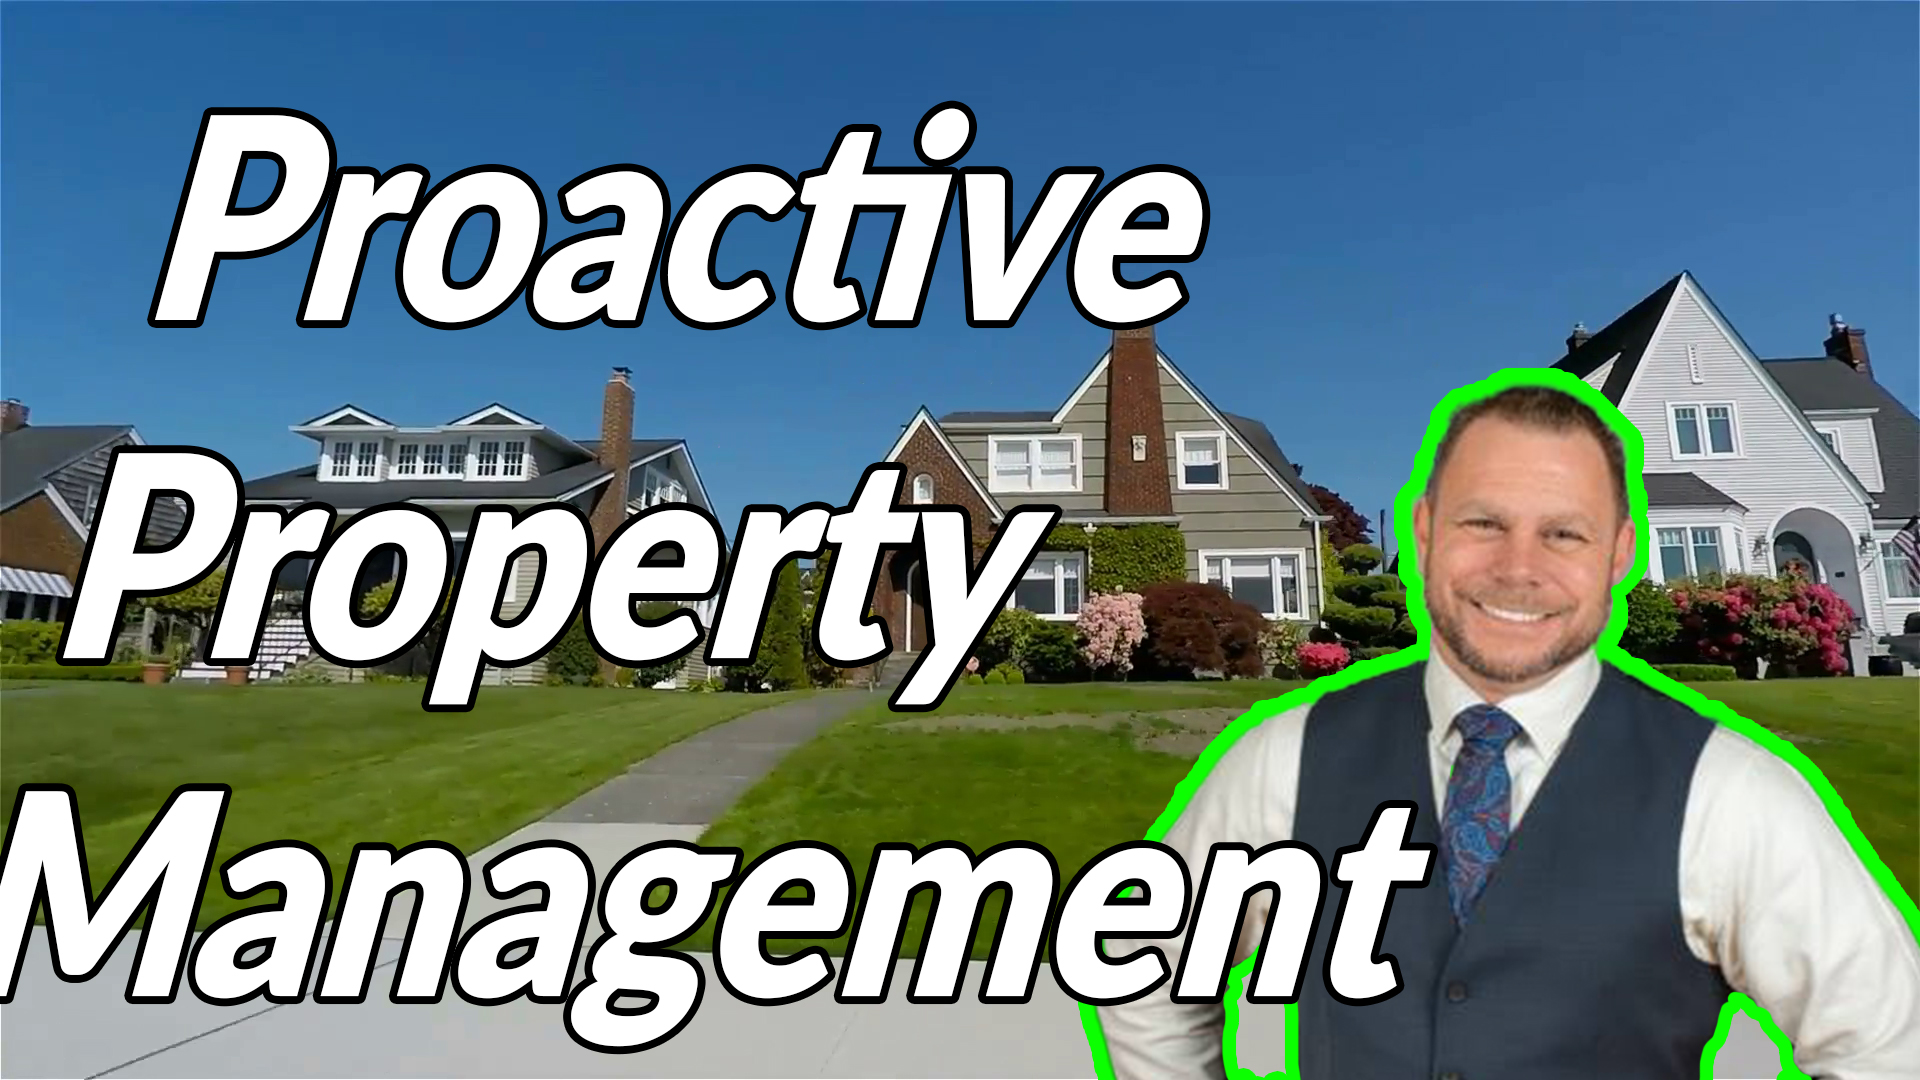 Proactive Property Management: Al Sartorelli Learns from COVID